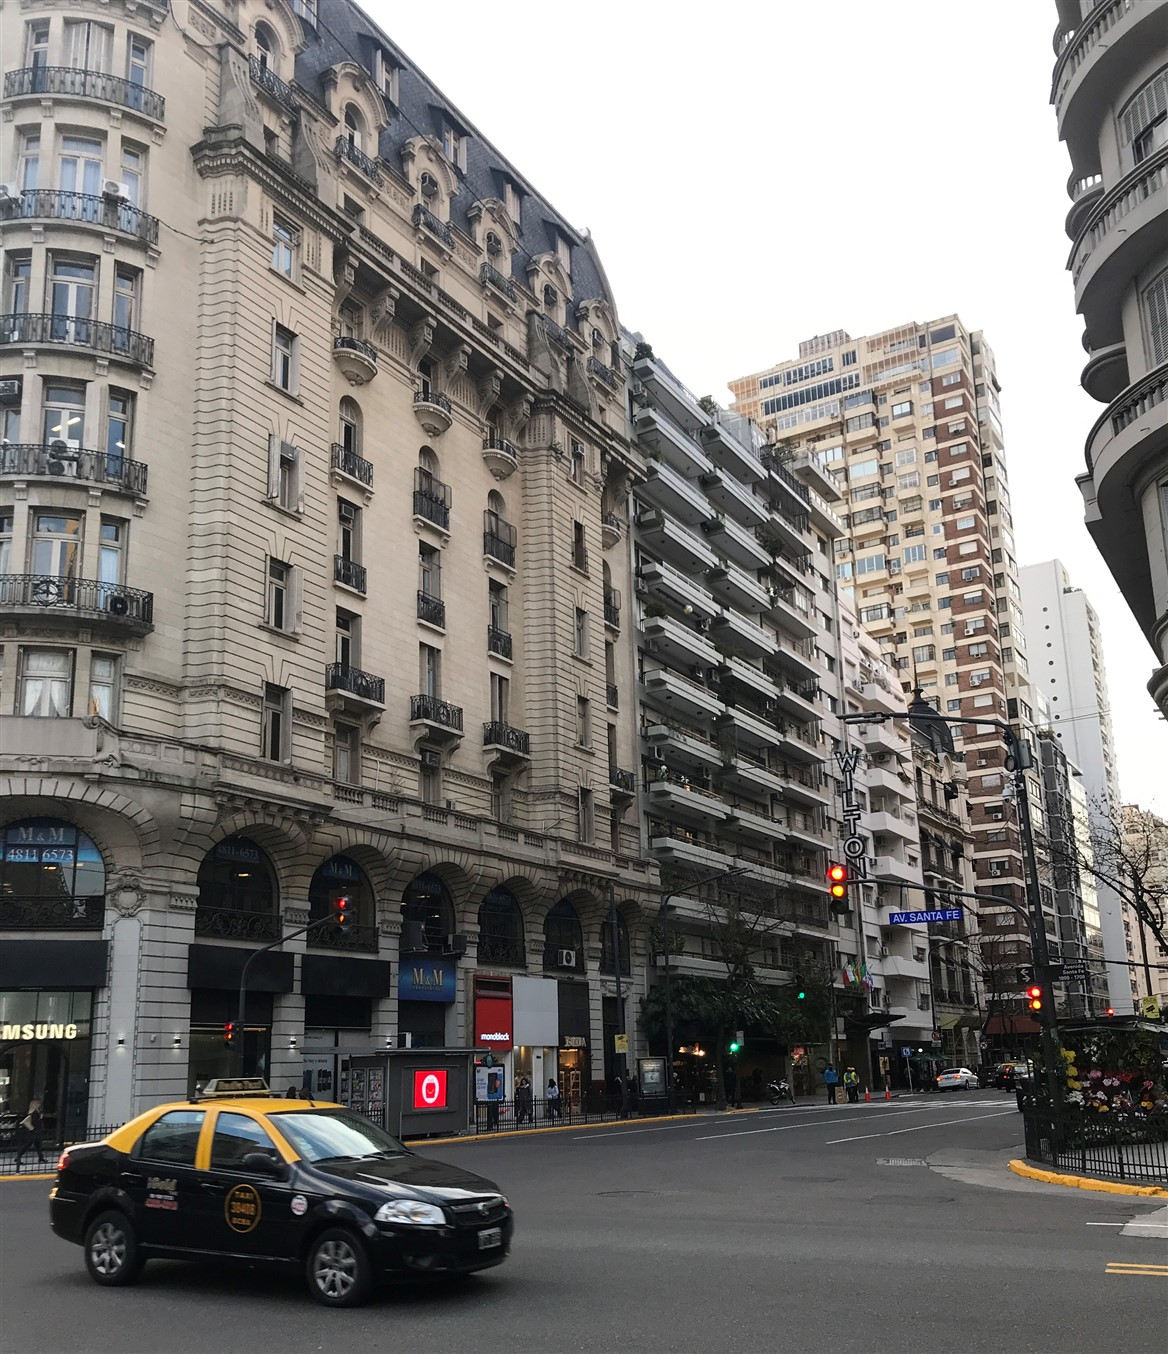 2019 08 23 9 Buenos Aires.jpg